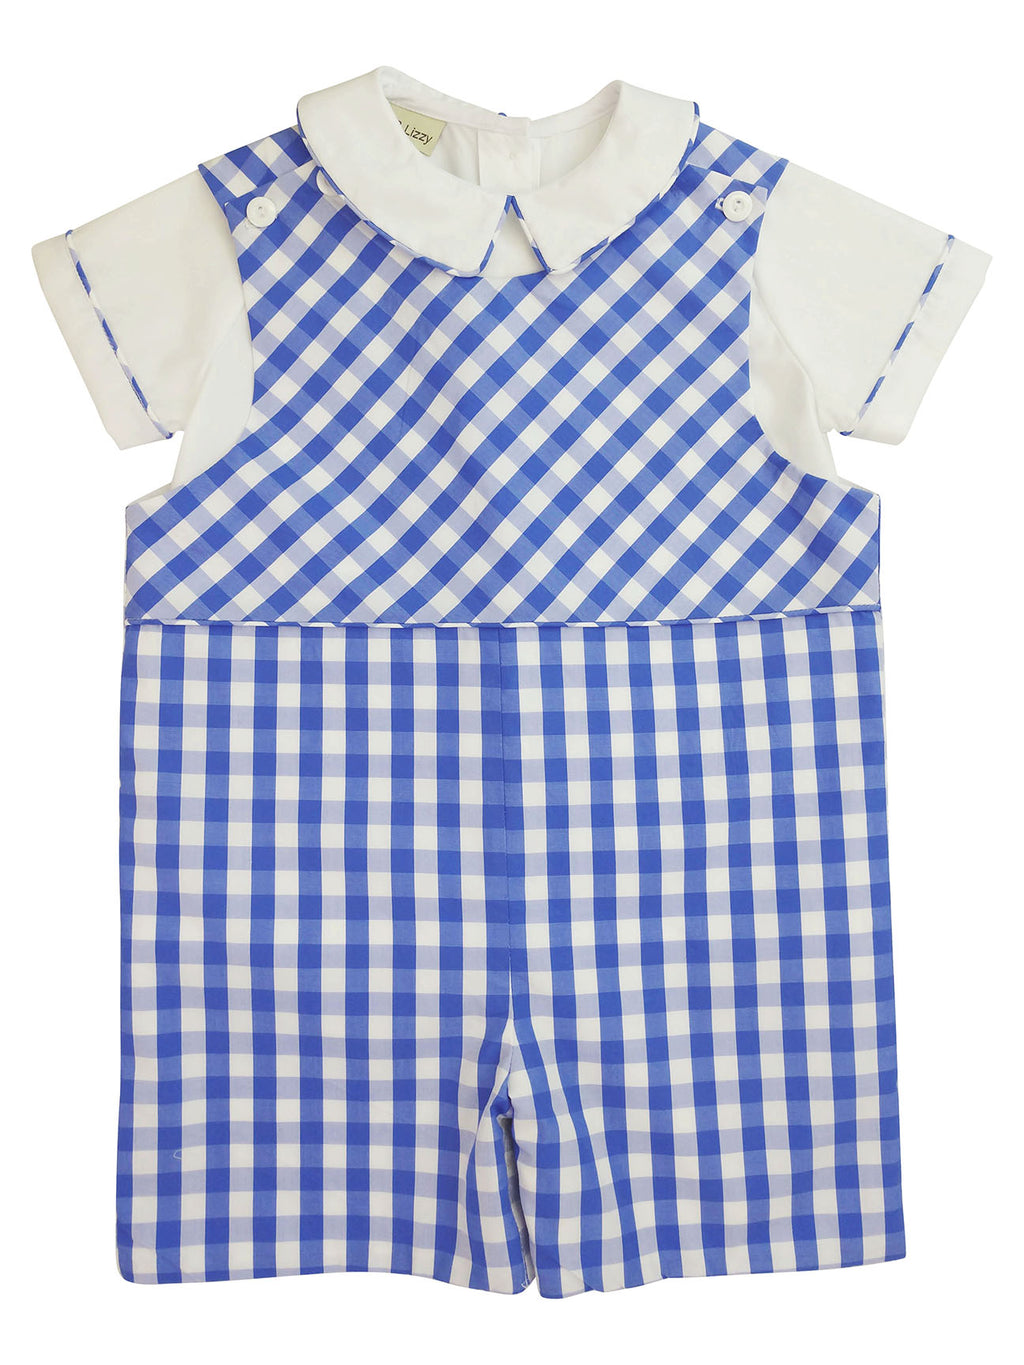 Andy Blue checks  boy's Overall set - Little Threads Inc. Children's Clothing